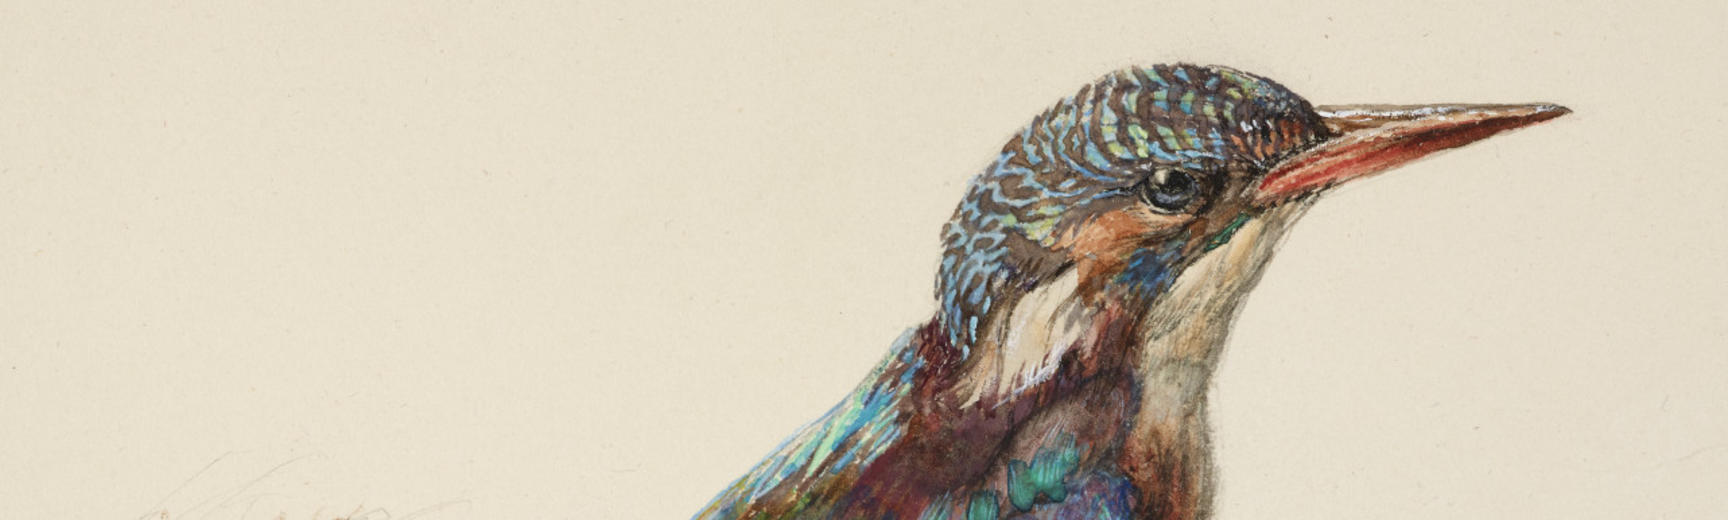 John Ruskin, Study of a Kingfisher with Dominant Reference to Colour